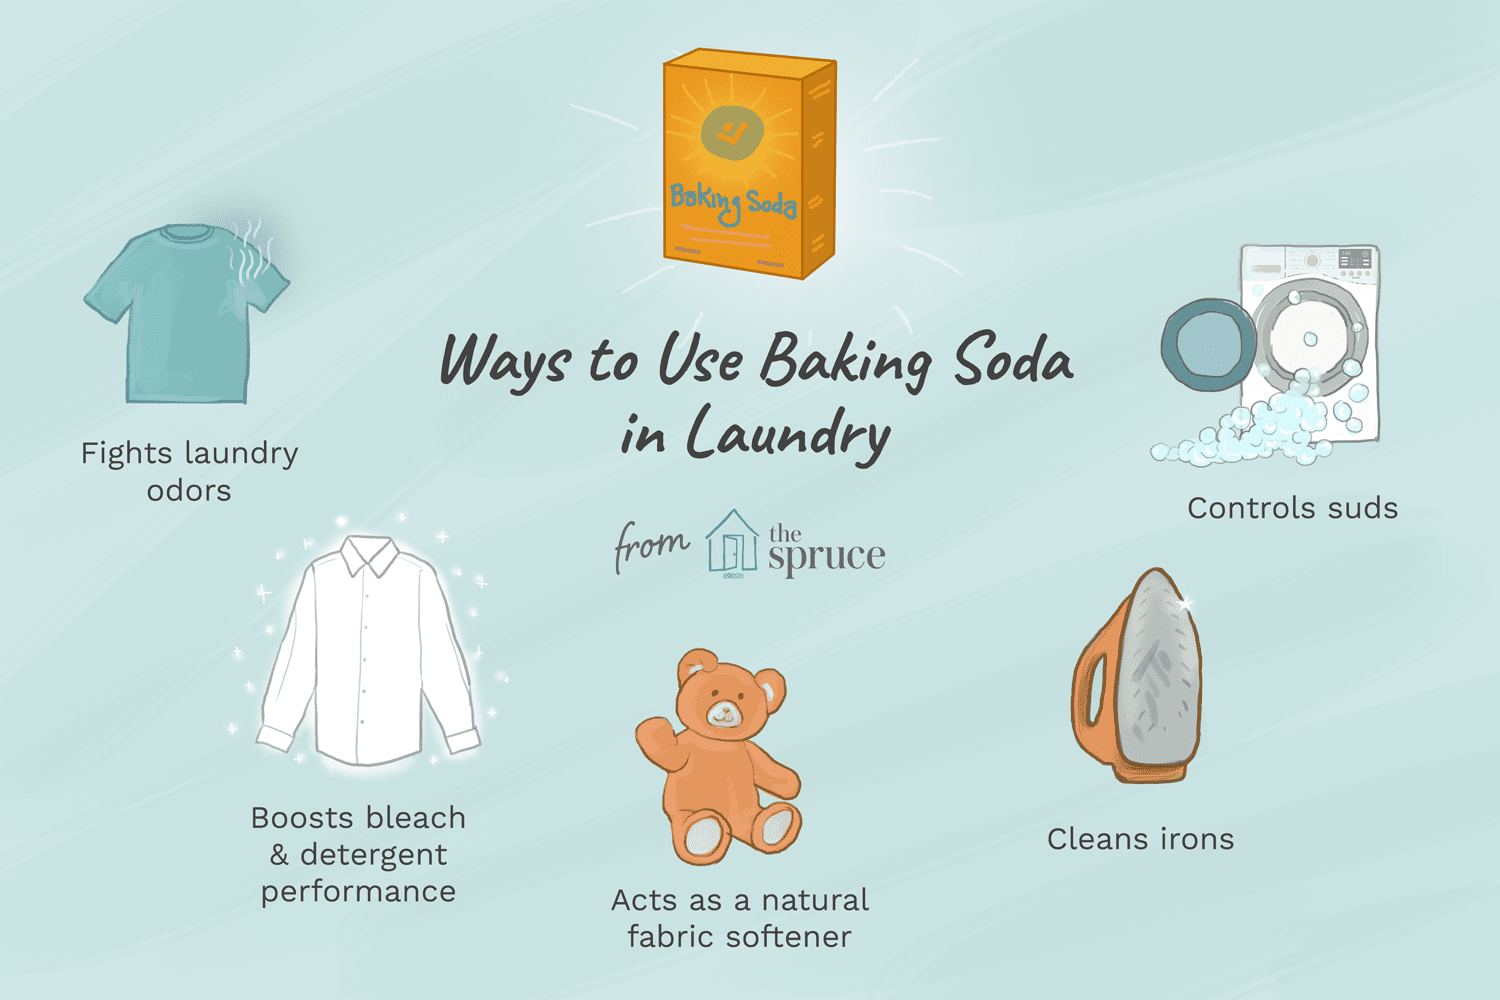 5 Reasons To Keep Baking Soda In Your Laundry Room Baking Soda